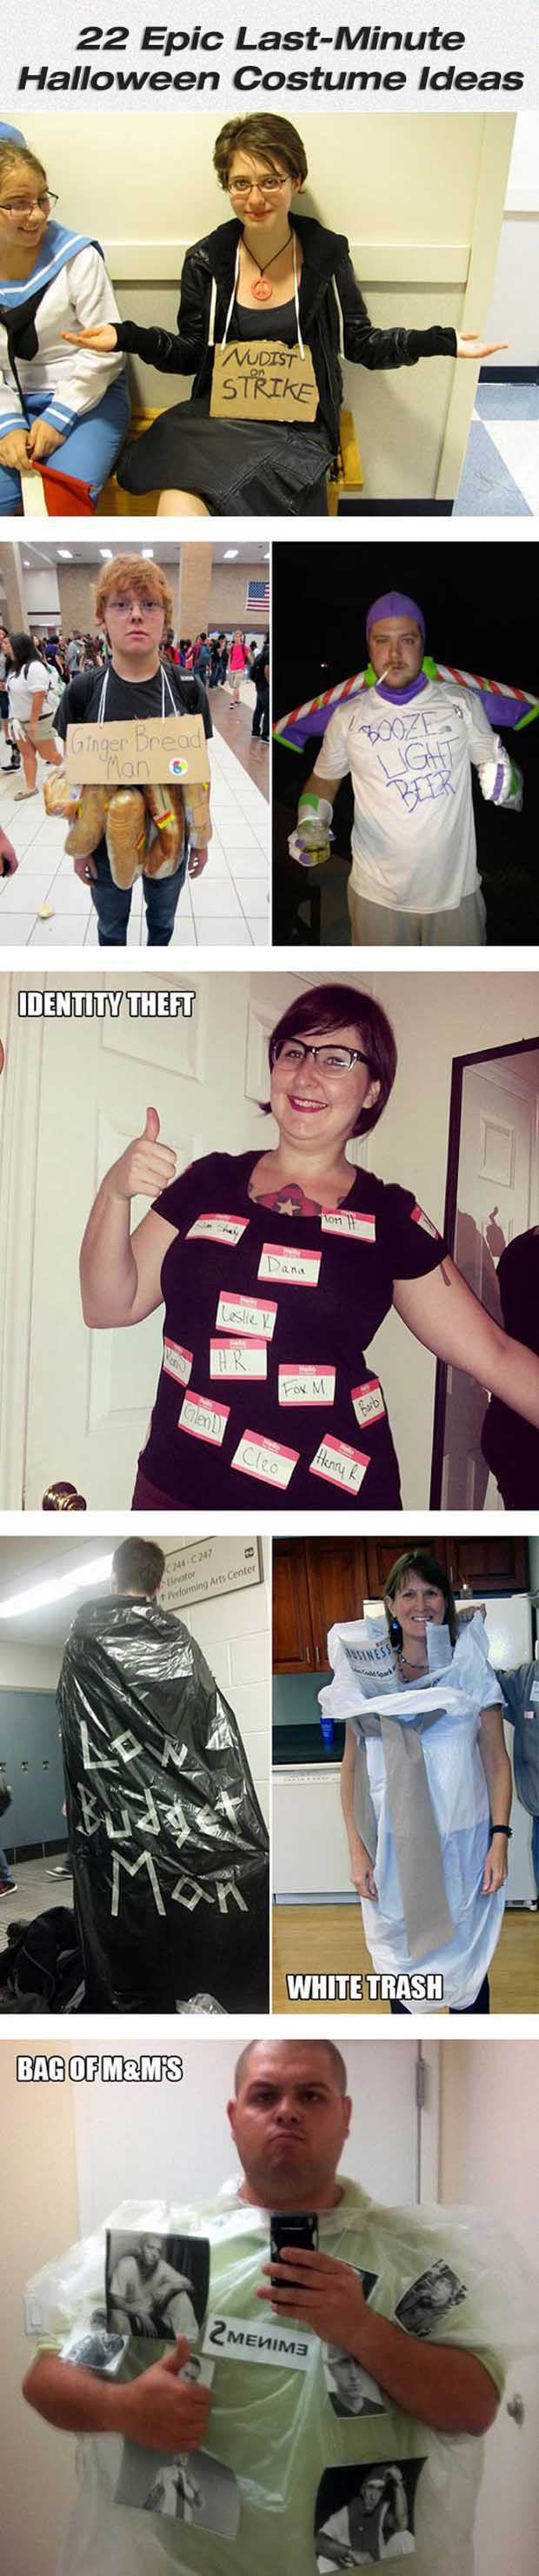 Epic Last Minute Halloween Costume Ideas For Lazy People - 22 Pics